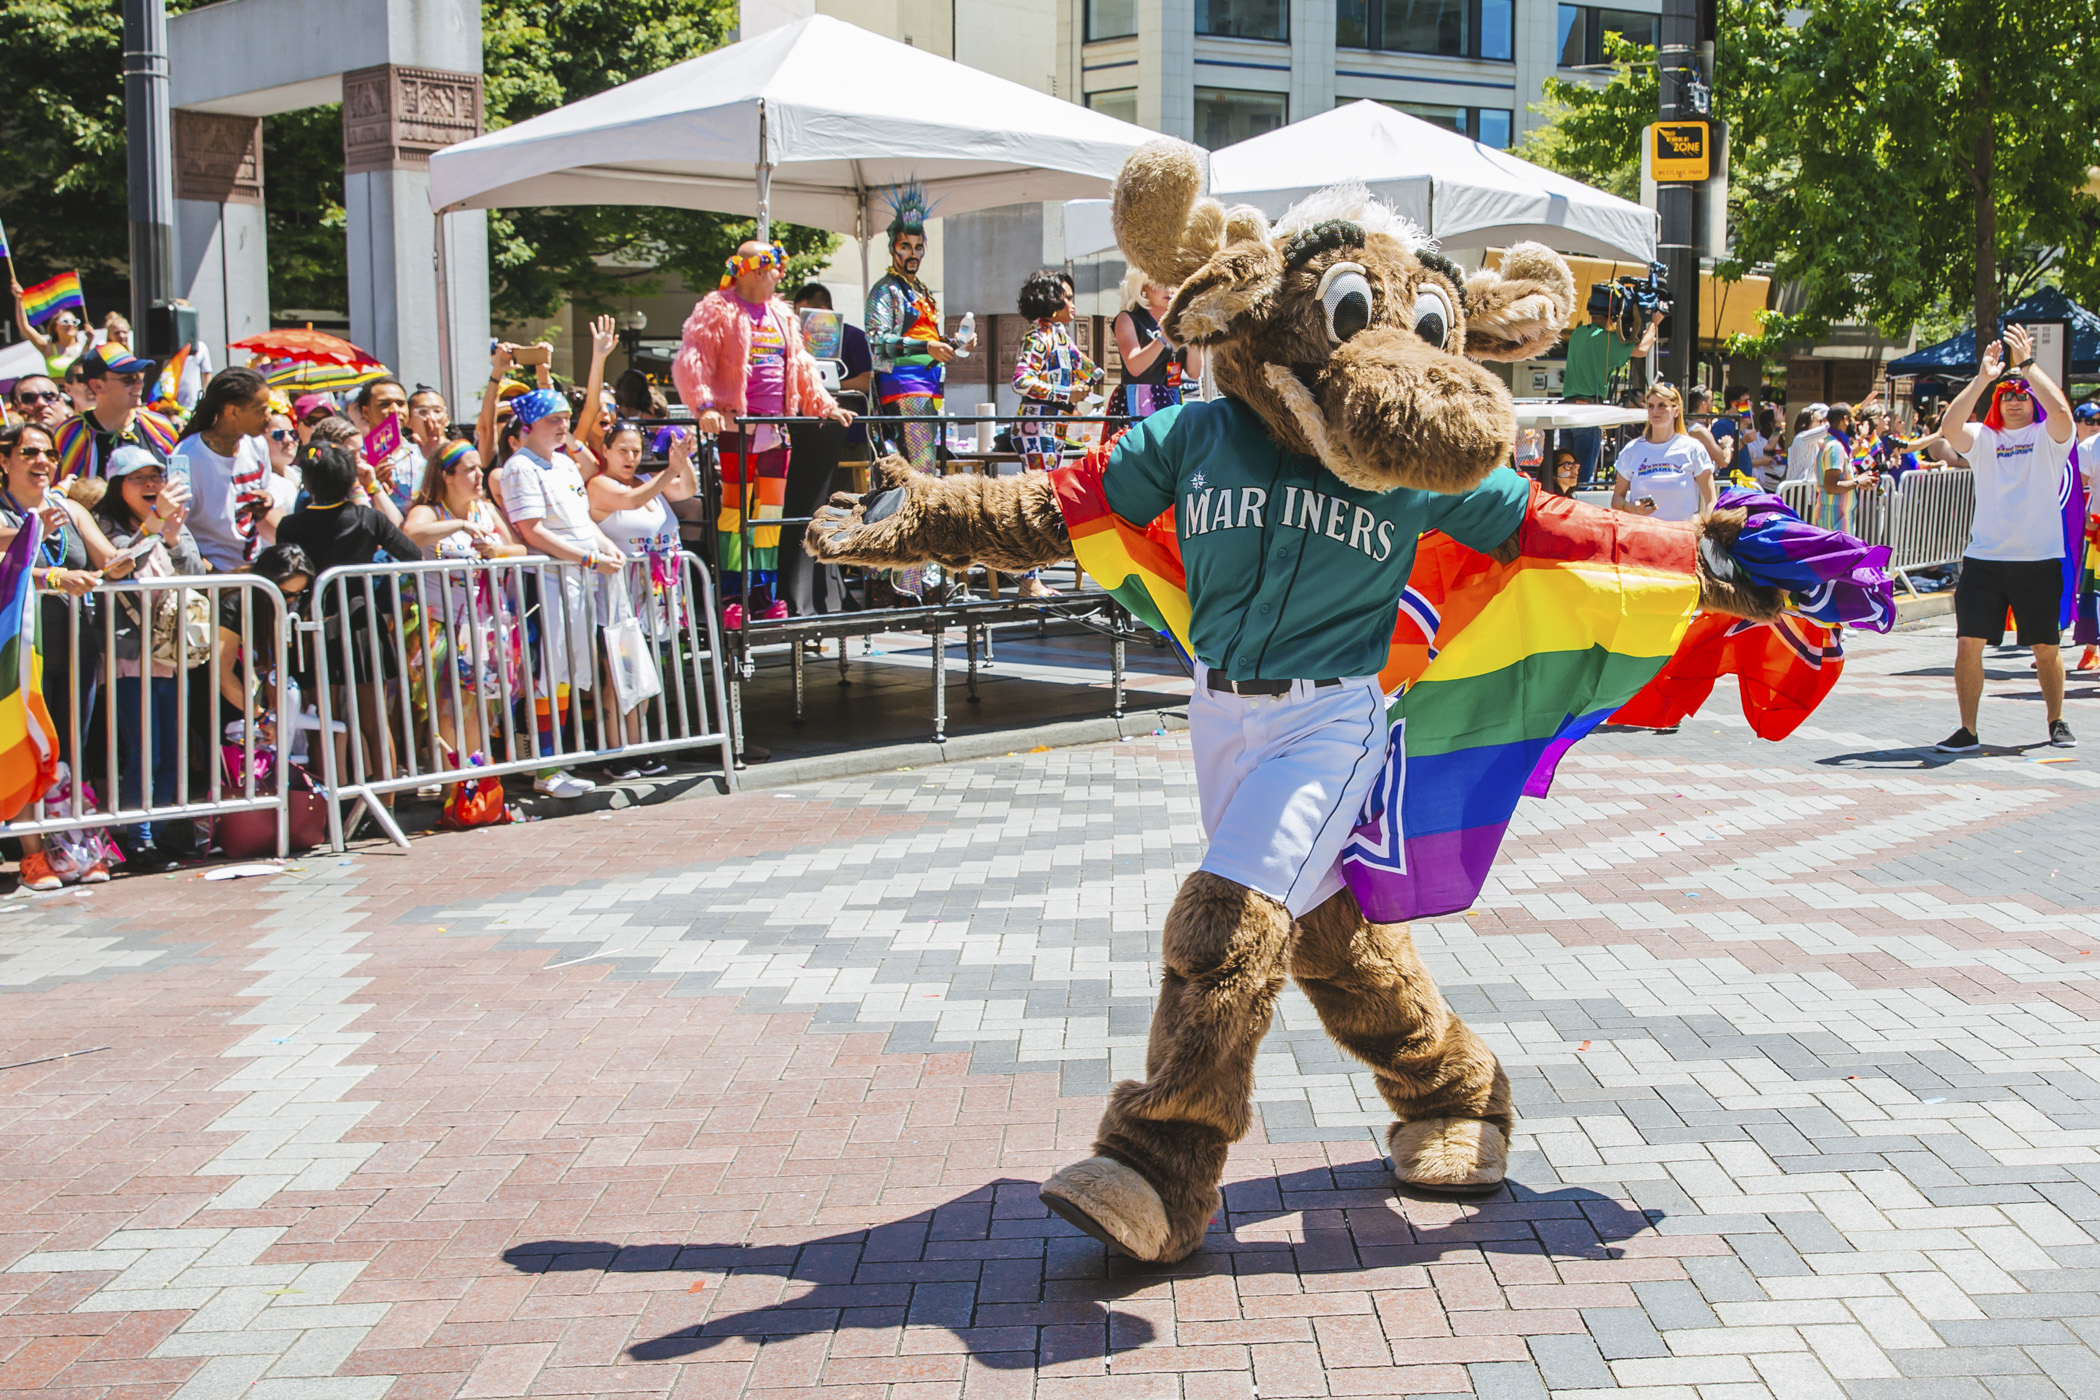 "2019{&nbsp;}Seattle Pride Parade.{&nbsp;}We're celebrating what would have been the weekend of the{&nbsp;}<a  href=""https://www.seattlepride.org/"" target=""_blank"" title=""https://www.seattlepride.org/"">Seattle Pride Parade</a>{&nbsp;}with a look back at parades past and remembering all the joy and love they have brought our city! If you're missing it as much as we are - join in virtually!{&nbsp;}<a  href=""https://www.seattlepride.org/events/together-for-pride-seattles-virtual-pride"" target=""_blank"" title=""https://www.seattlepride.org/events/together-for-pride-seattles-virtual-pride"">Together For Pride - Seattle's Virtual Pride</a>{&nbsp;}event is being held Friday to Sunday, June 26-28, with{&nbsp;}speakers, performances and activities. See you next year! (Image: Sunita Martini / Seattle Refined)"